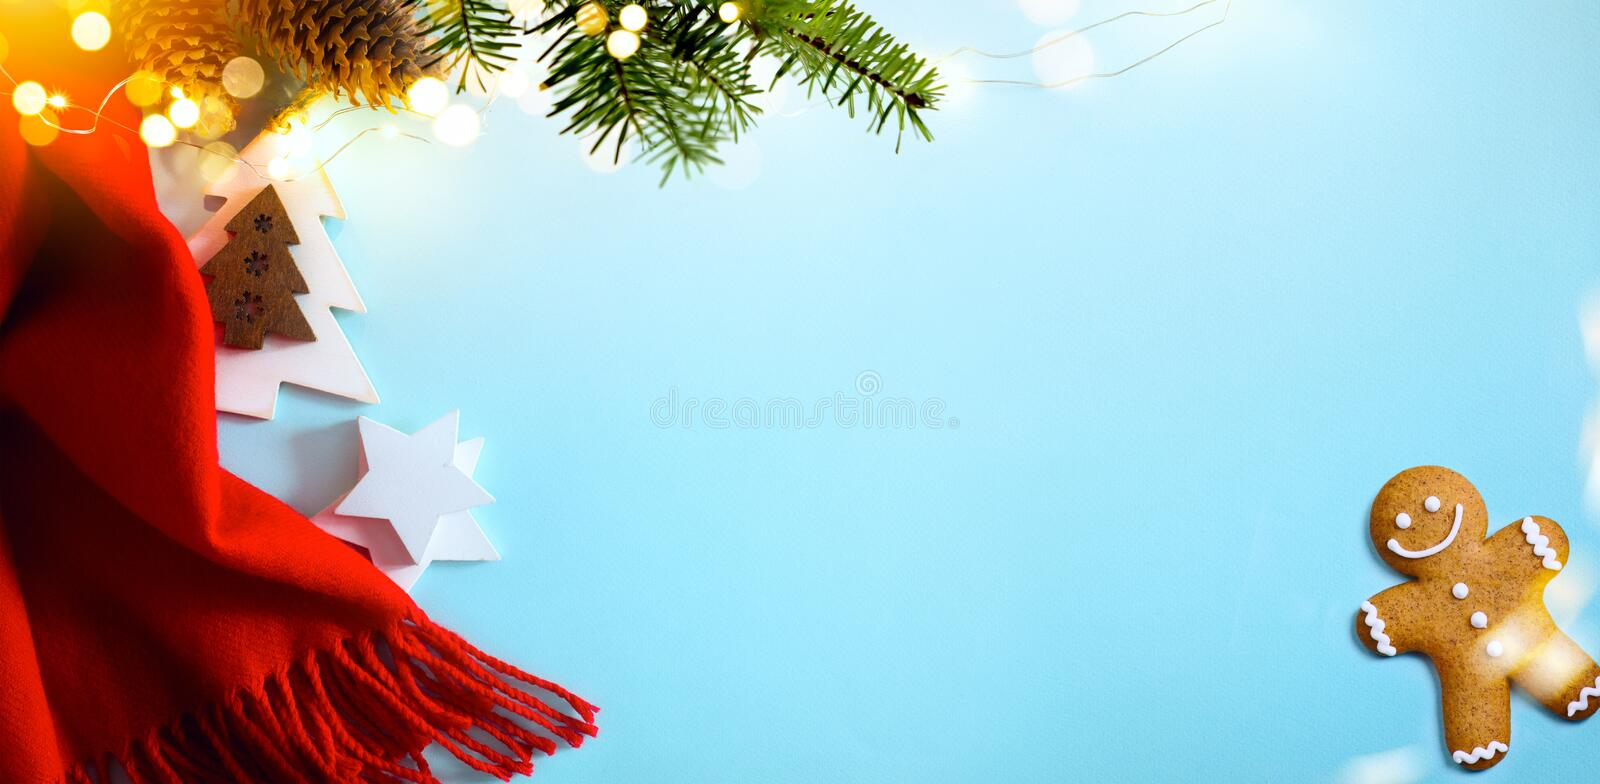 Art Christmas Tree with Decorations Light and Holiday Gift on Blue Background. New Year. Noel. Top view. Winter xmas Flat lay stock photos